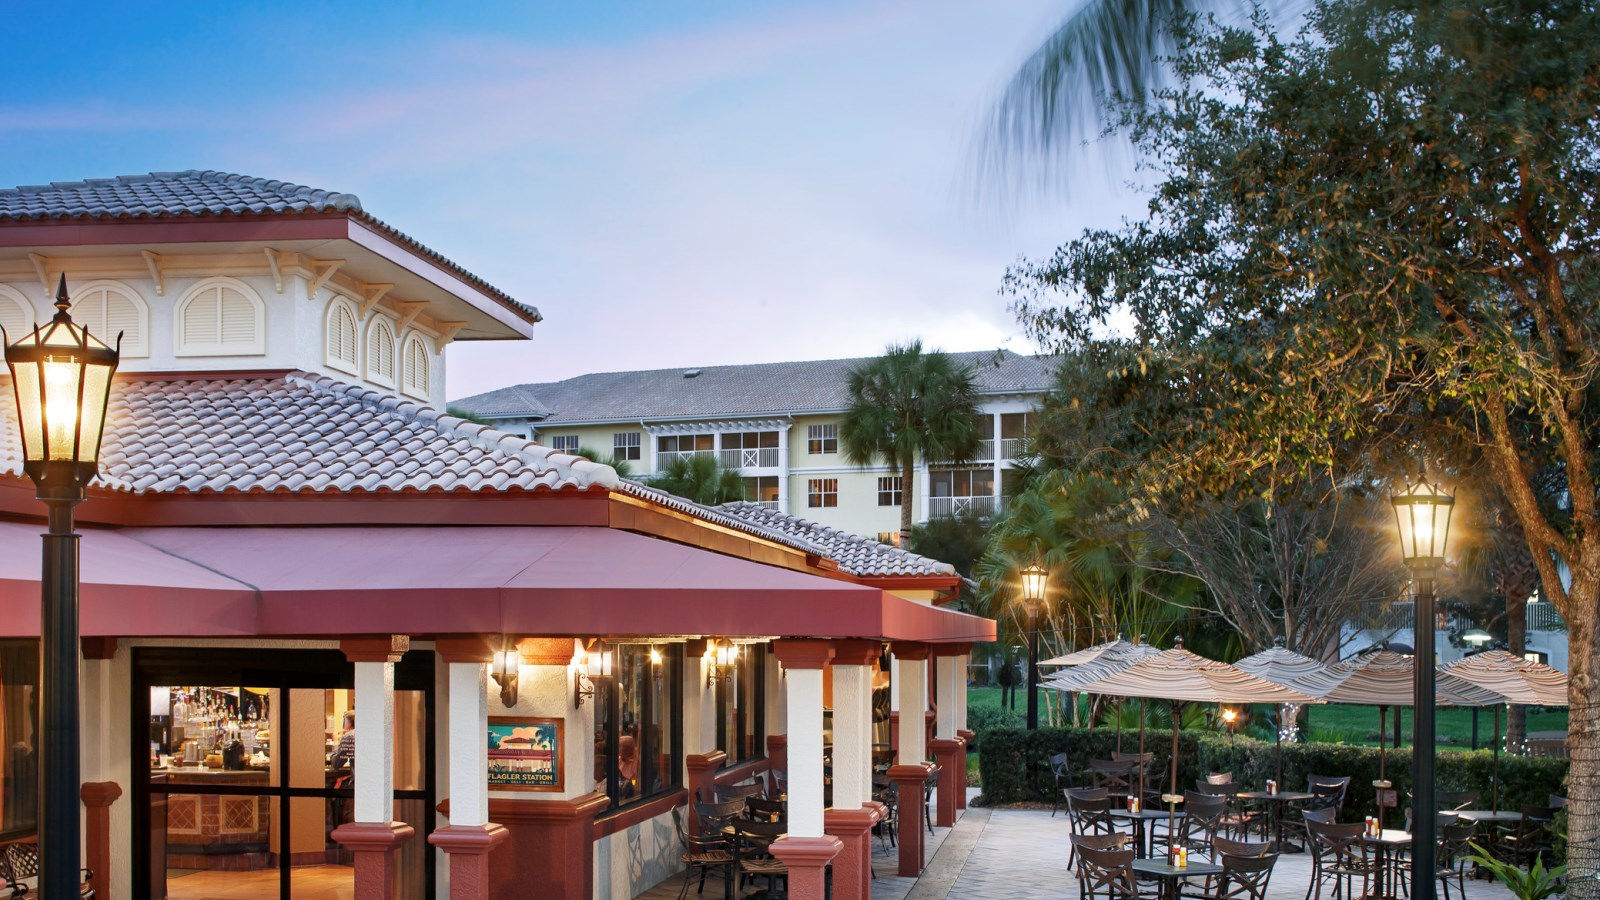 Flagler Station Bar & Grill | Sheraton Vistana Villages Resort Villas, I-Drive/Orlando